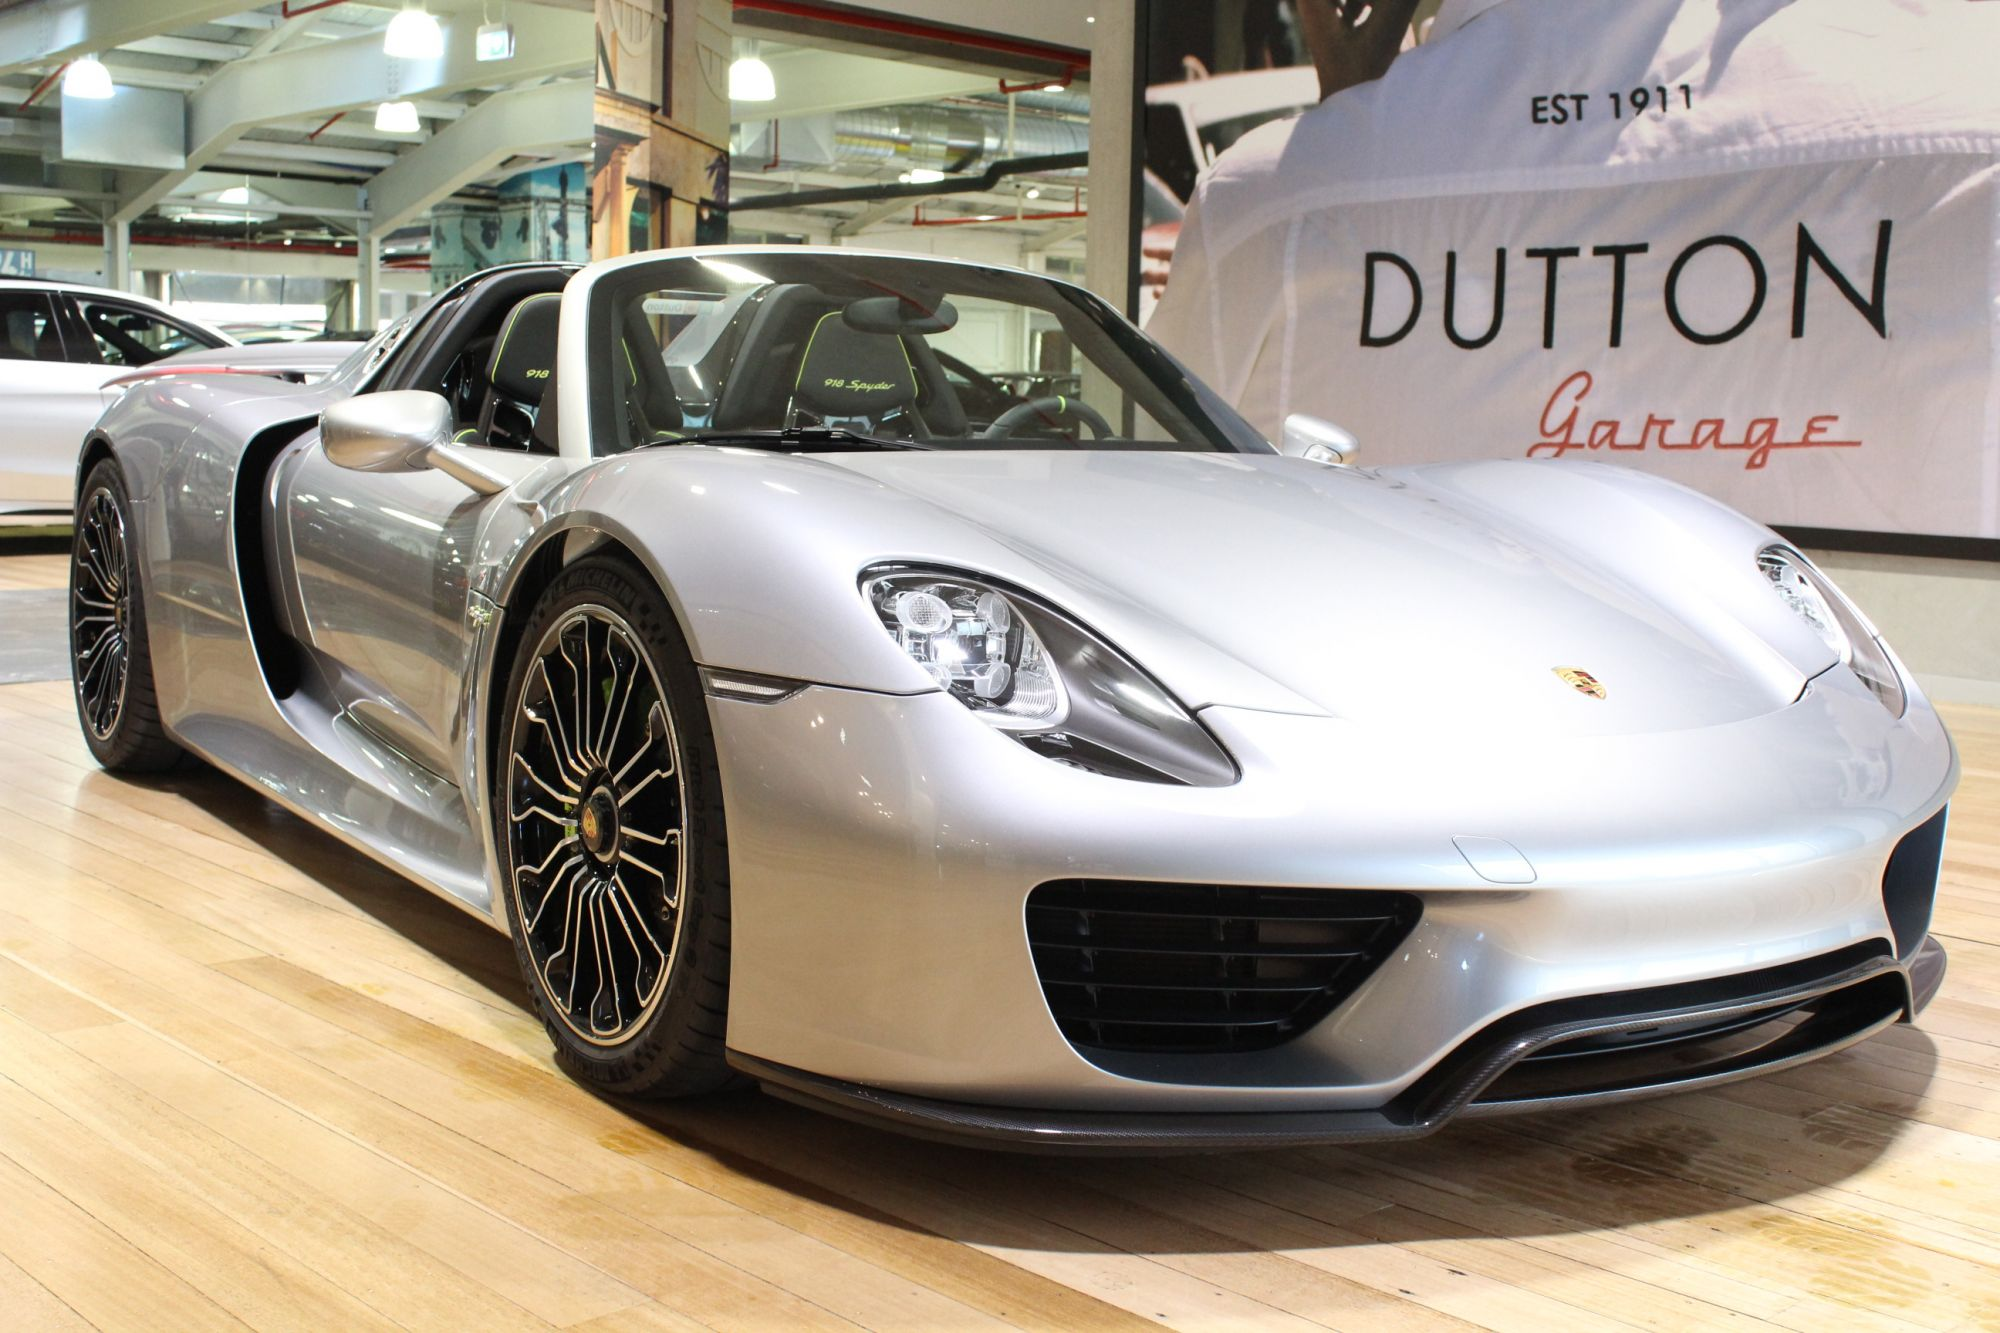 2015 porsche 918 spyder for sale dutton garage img7481 img7482 img7483 img7484 img7485 sciox Images